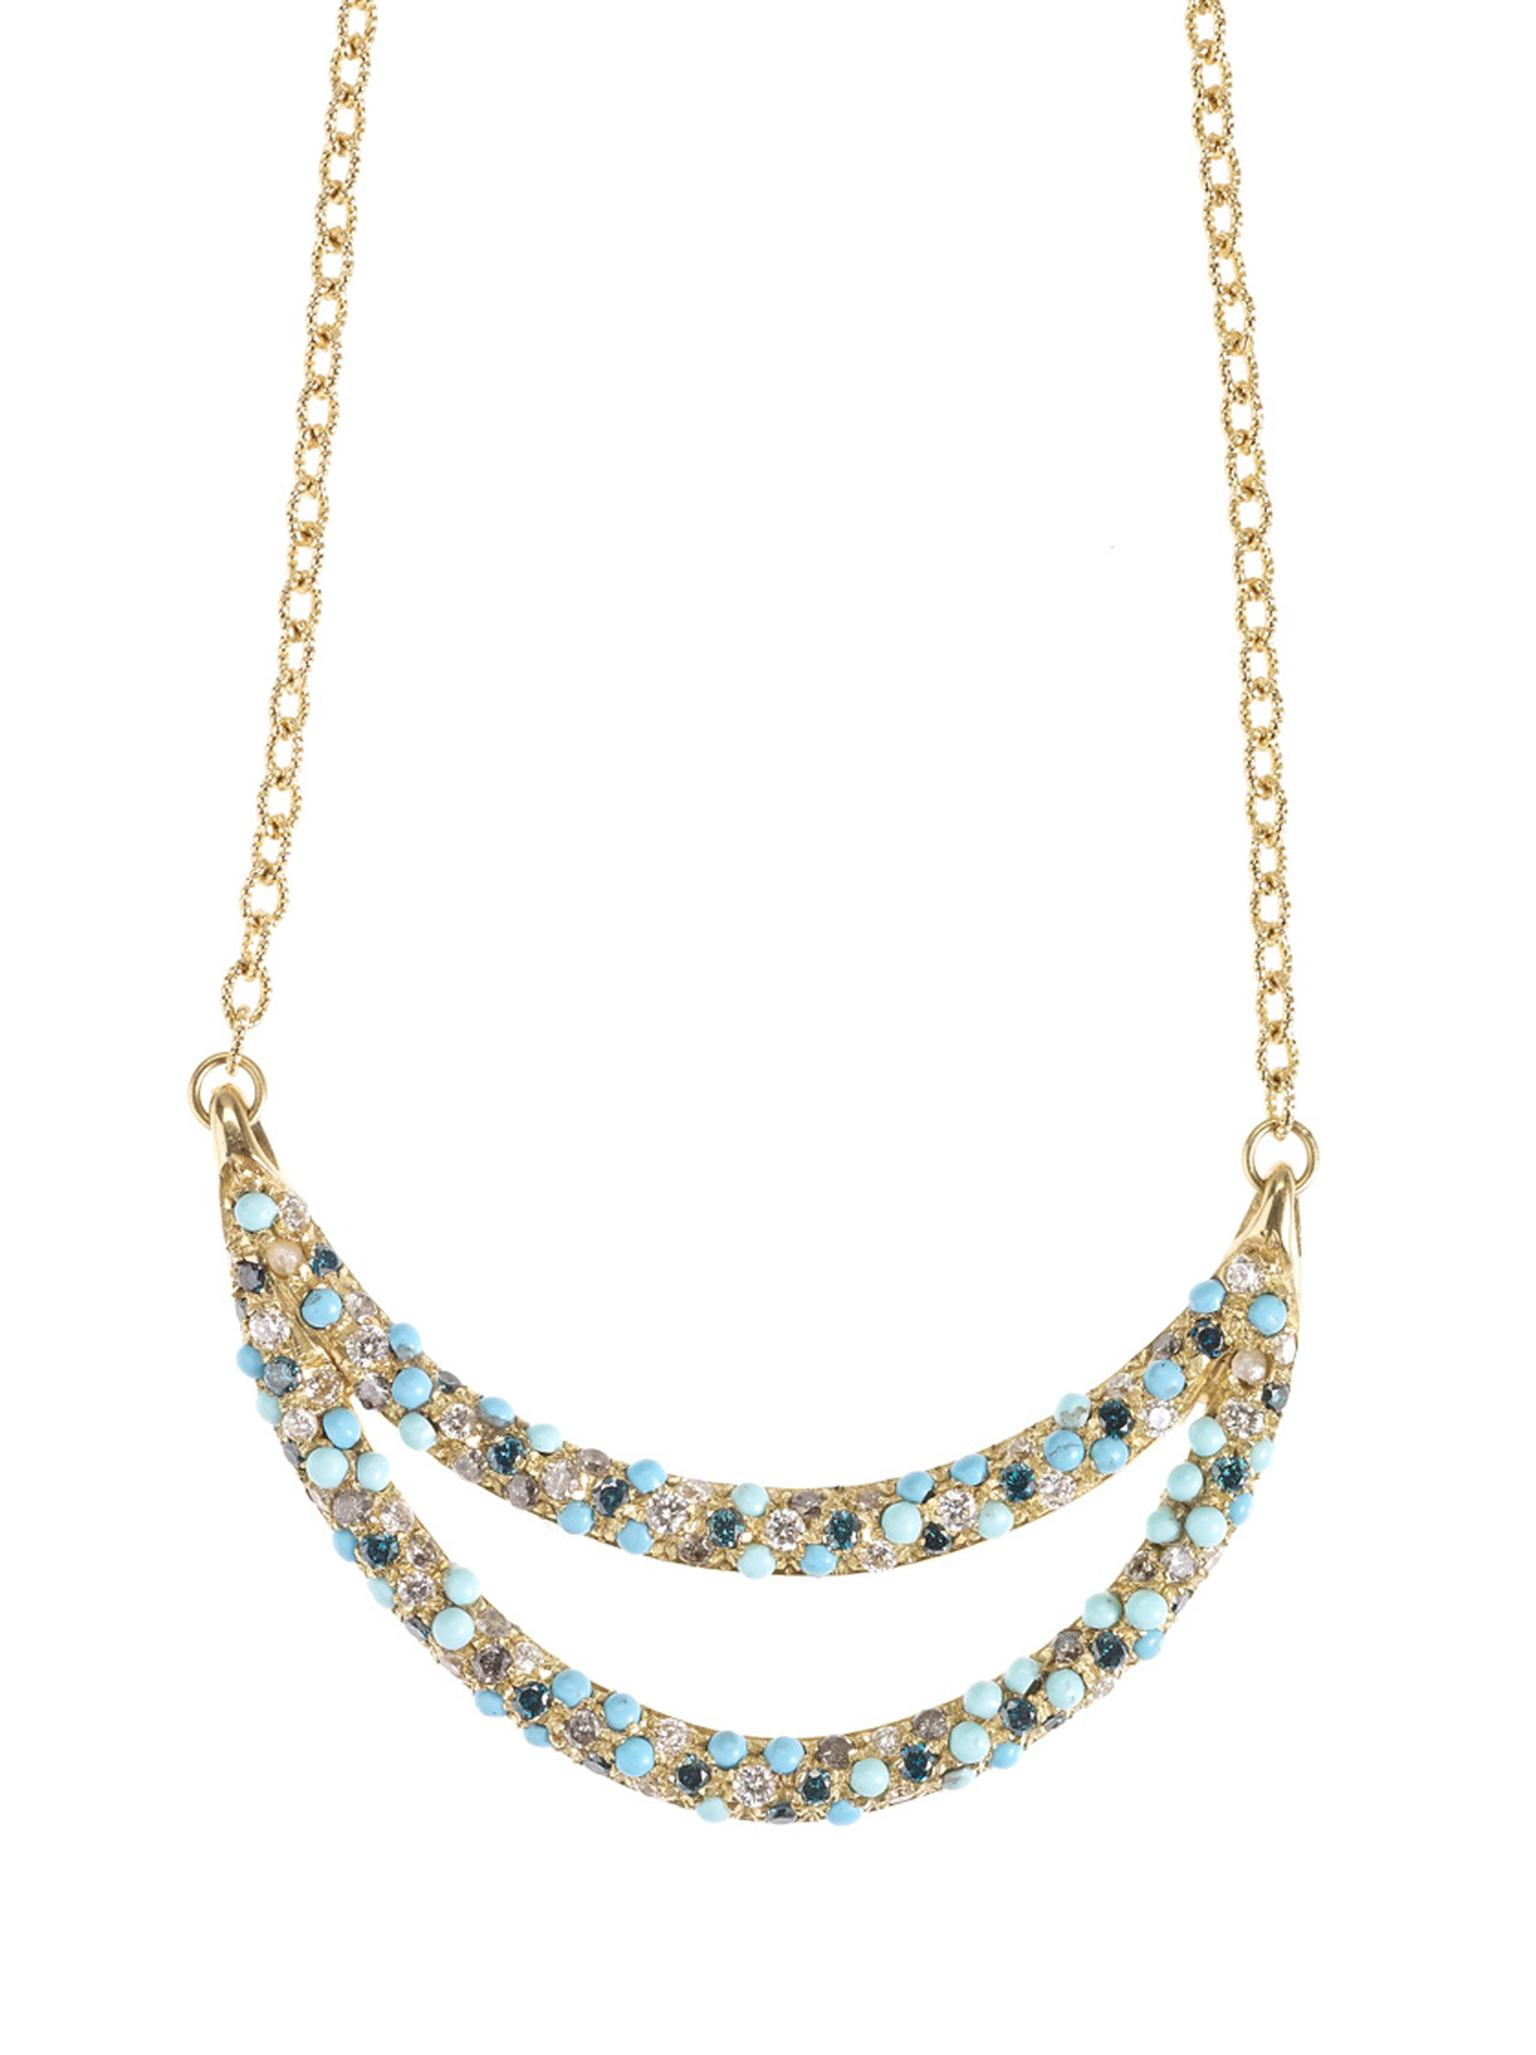 Carolina Bucci gold Smile necklace with multi-coloured gemstones